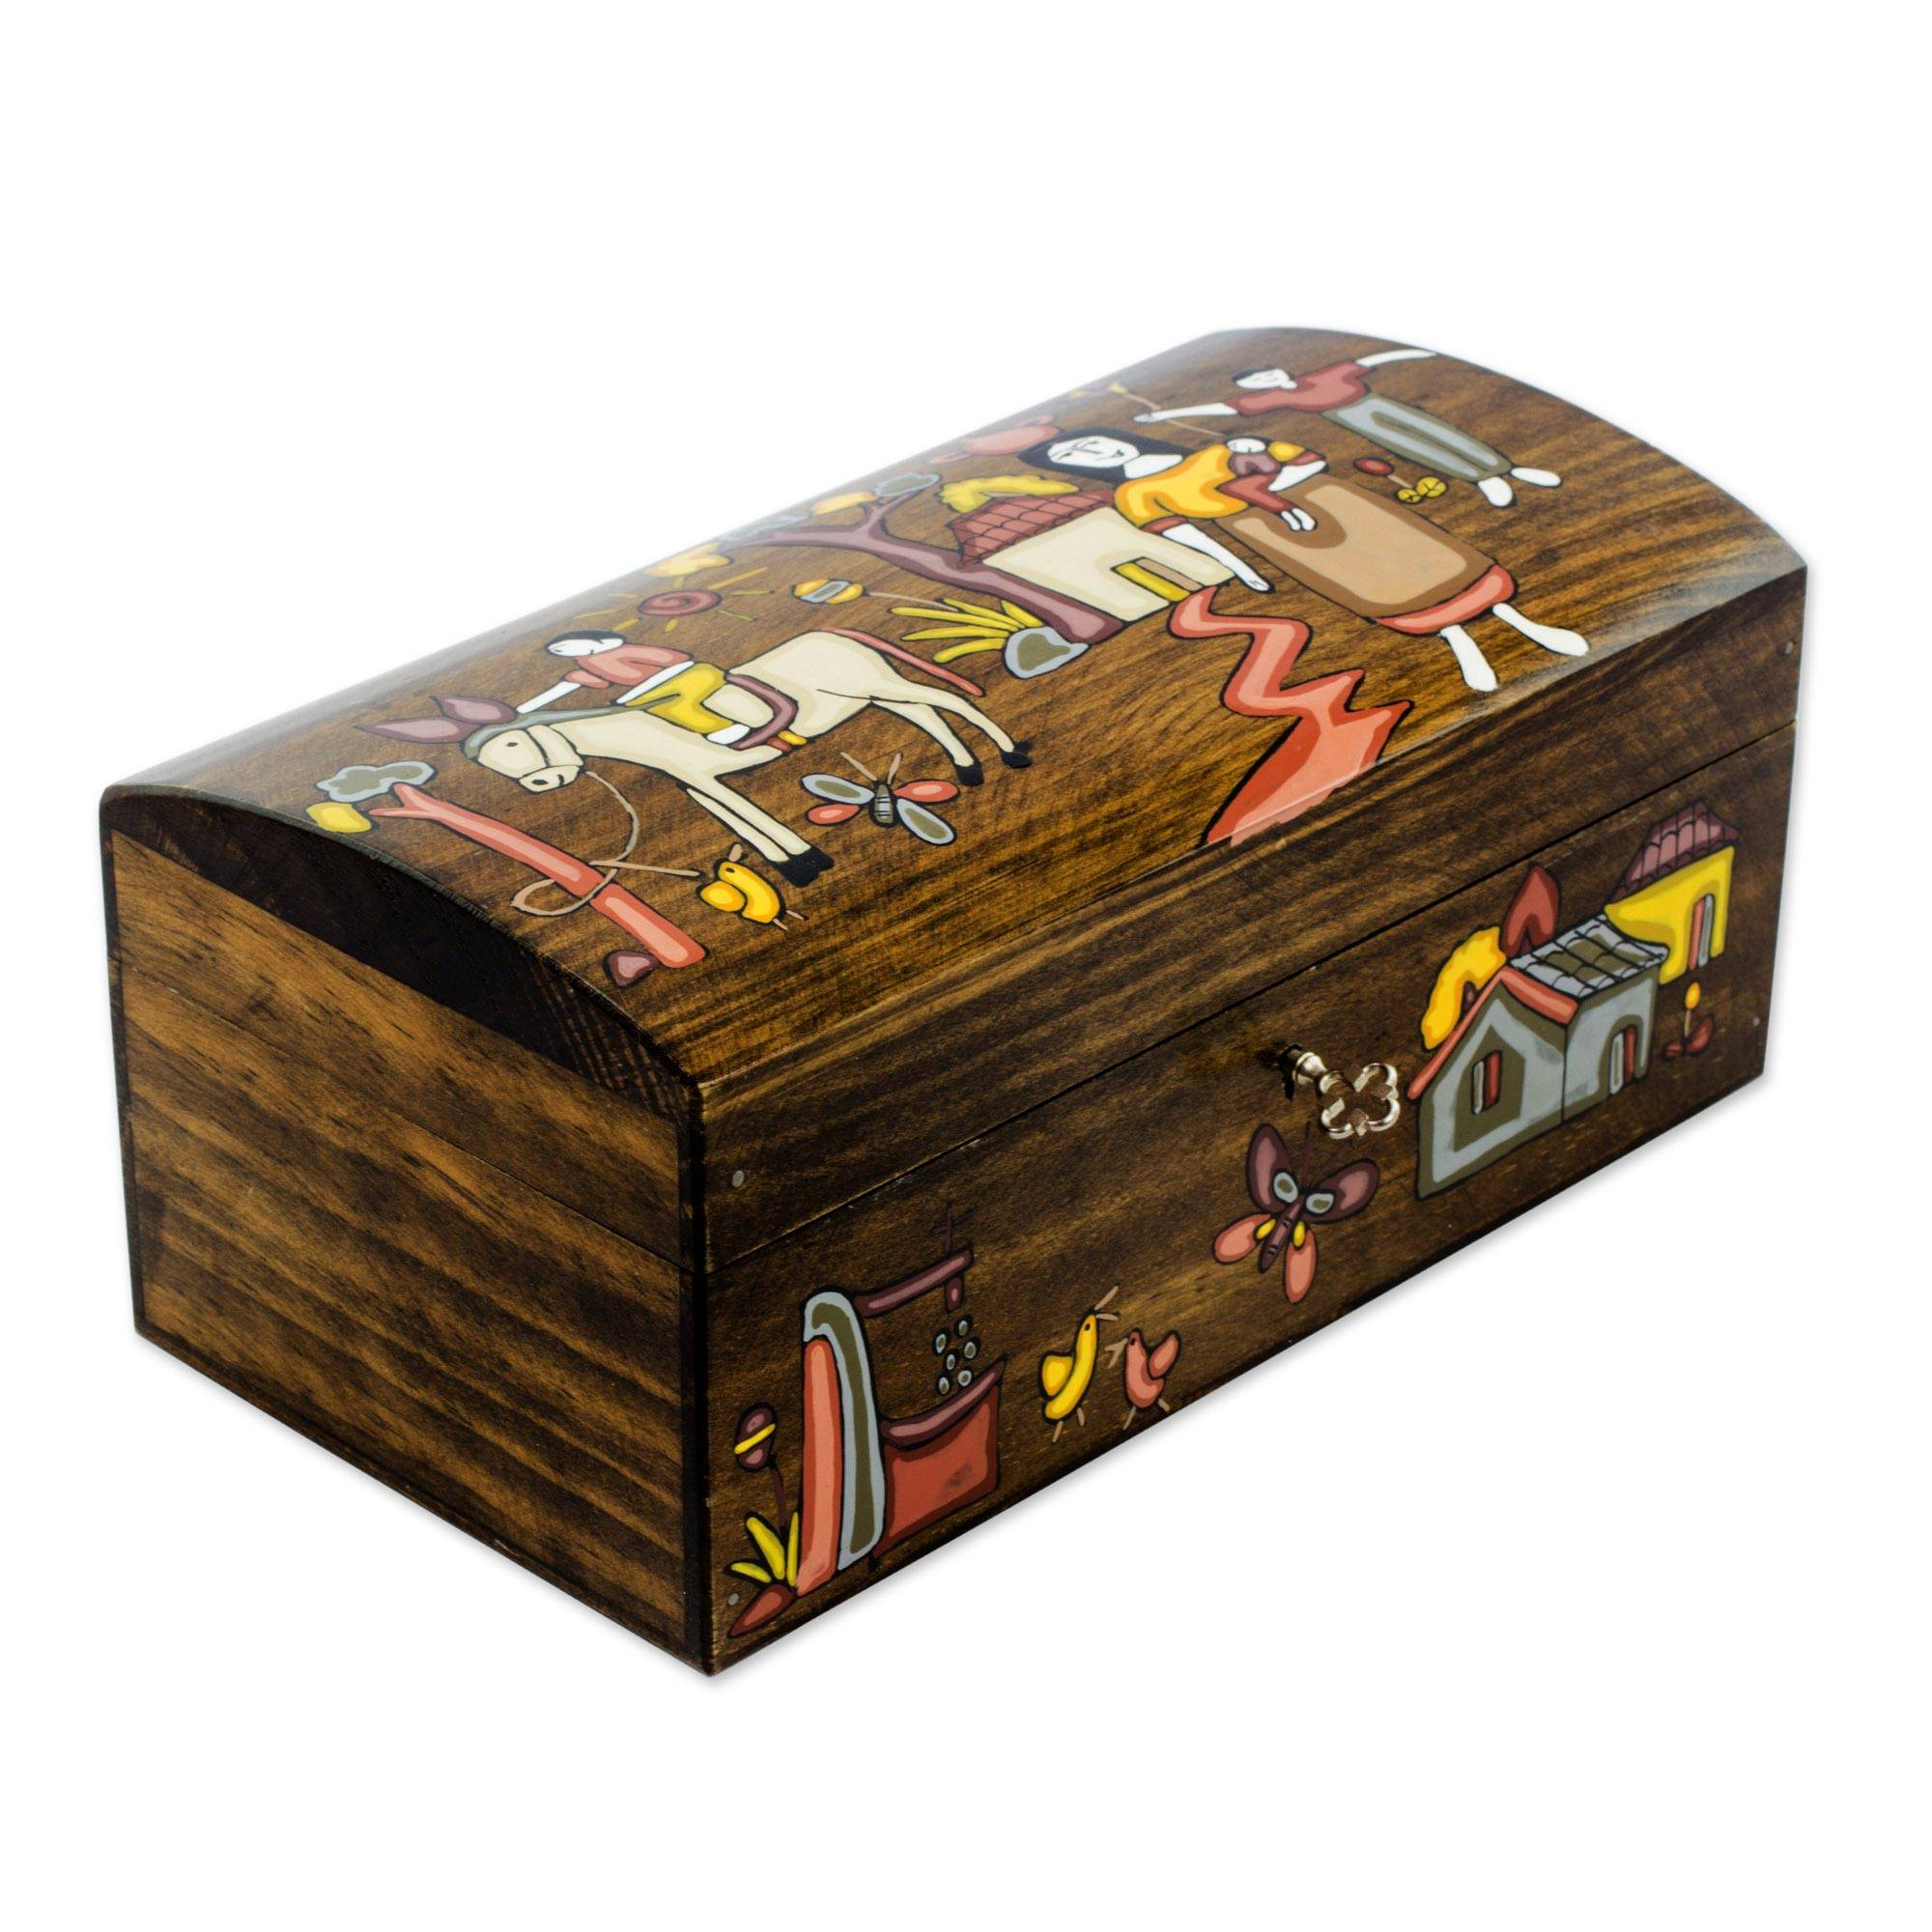 Wood jewelry boxes at novica